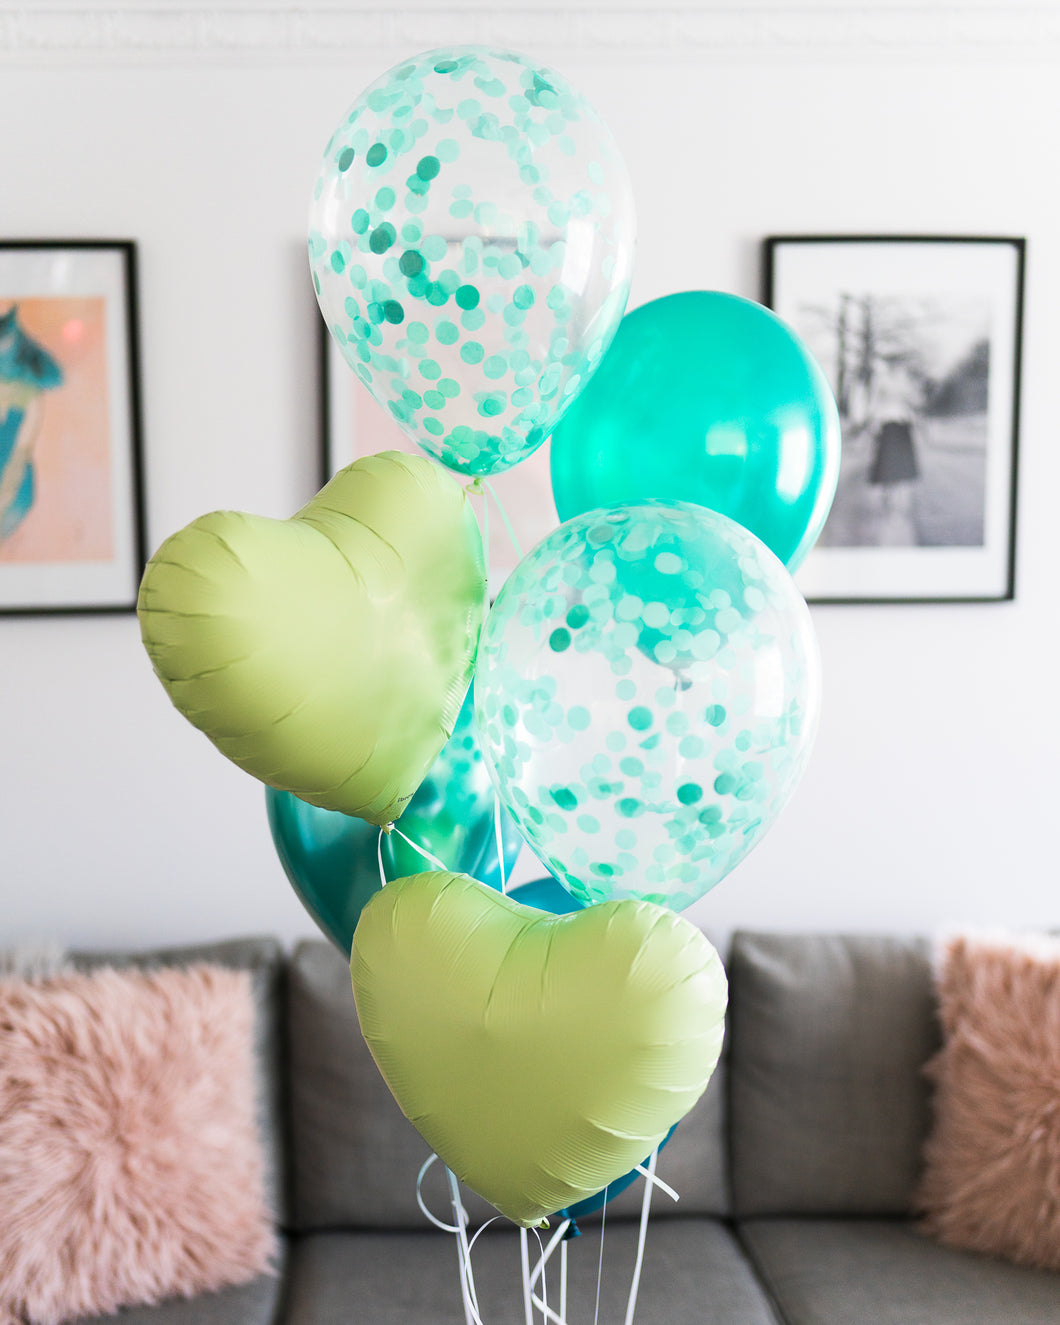 Balloon Bouquet - Confetti, Foil Hearts & Plain Balloons